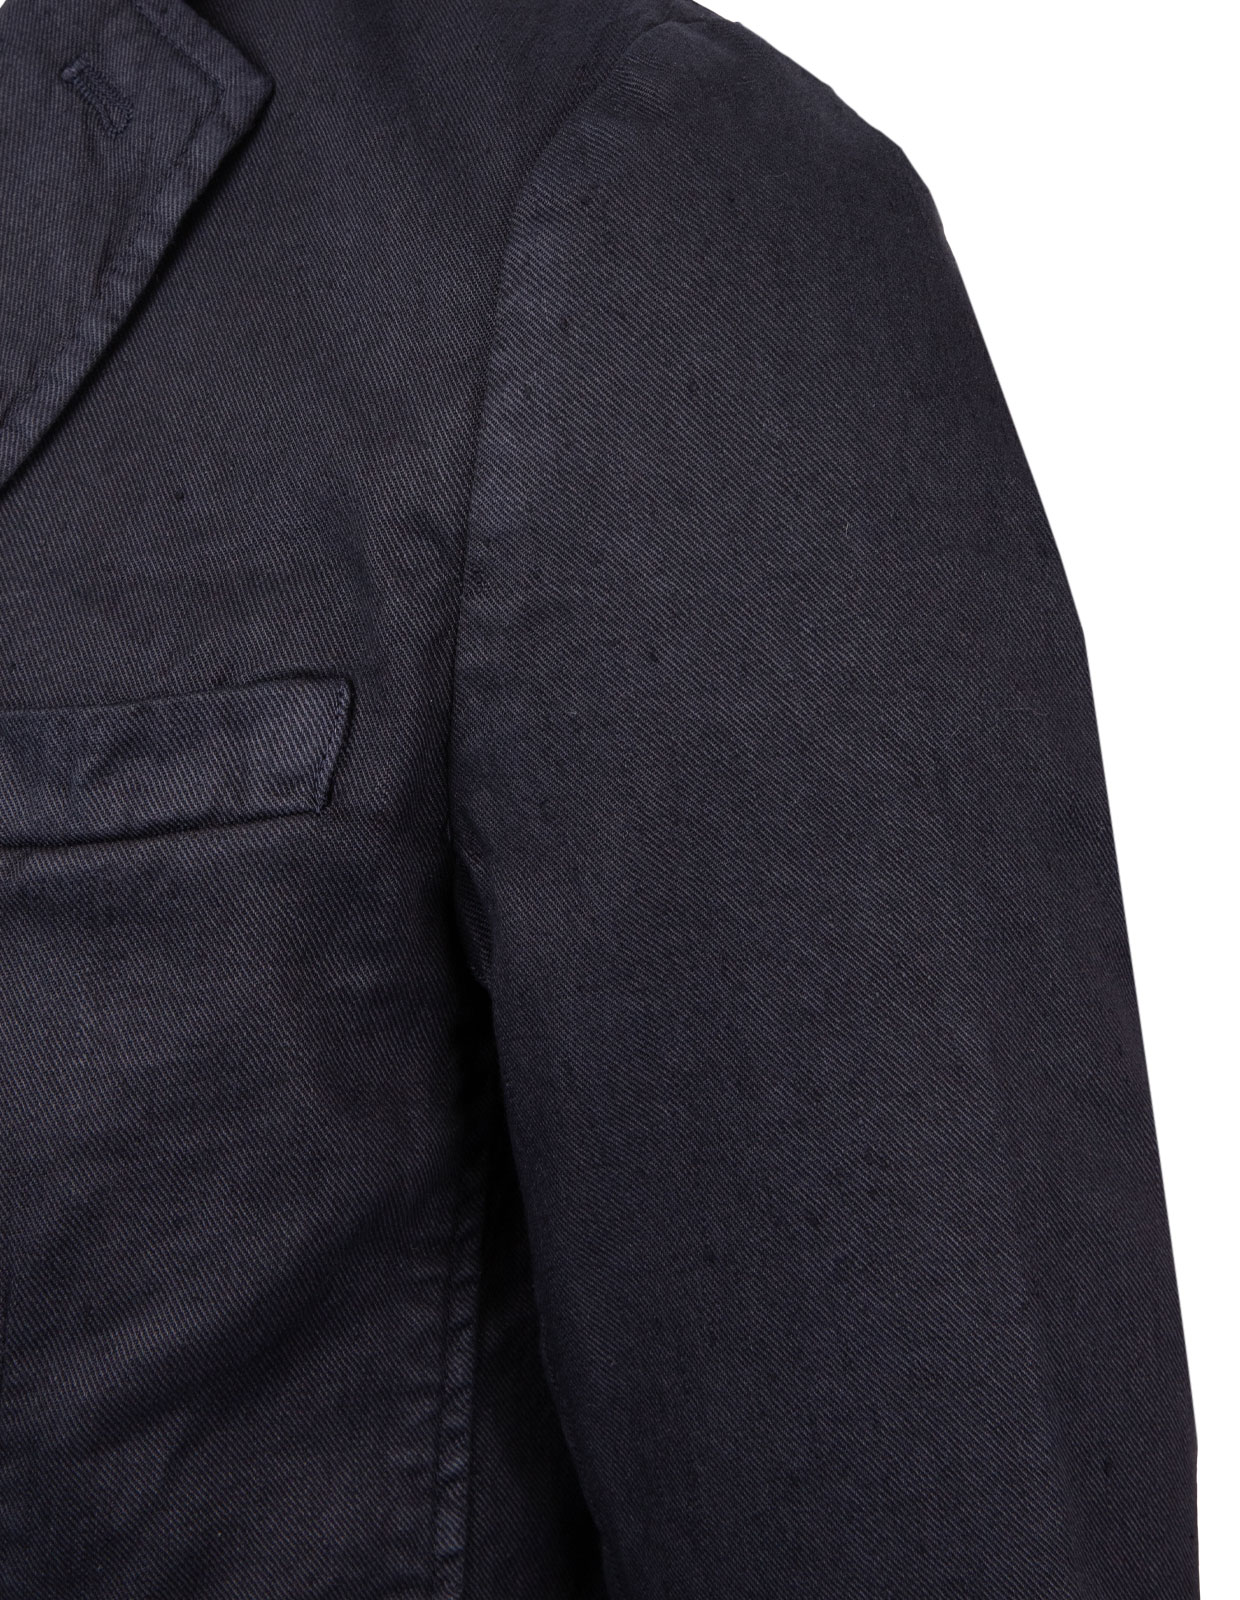 Davinci Safari Slim Fit Blazer Linen Cotton Blue Navy